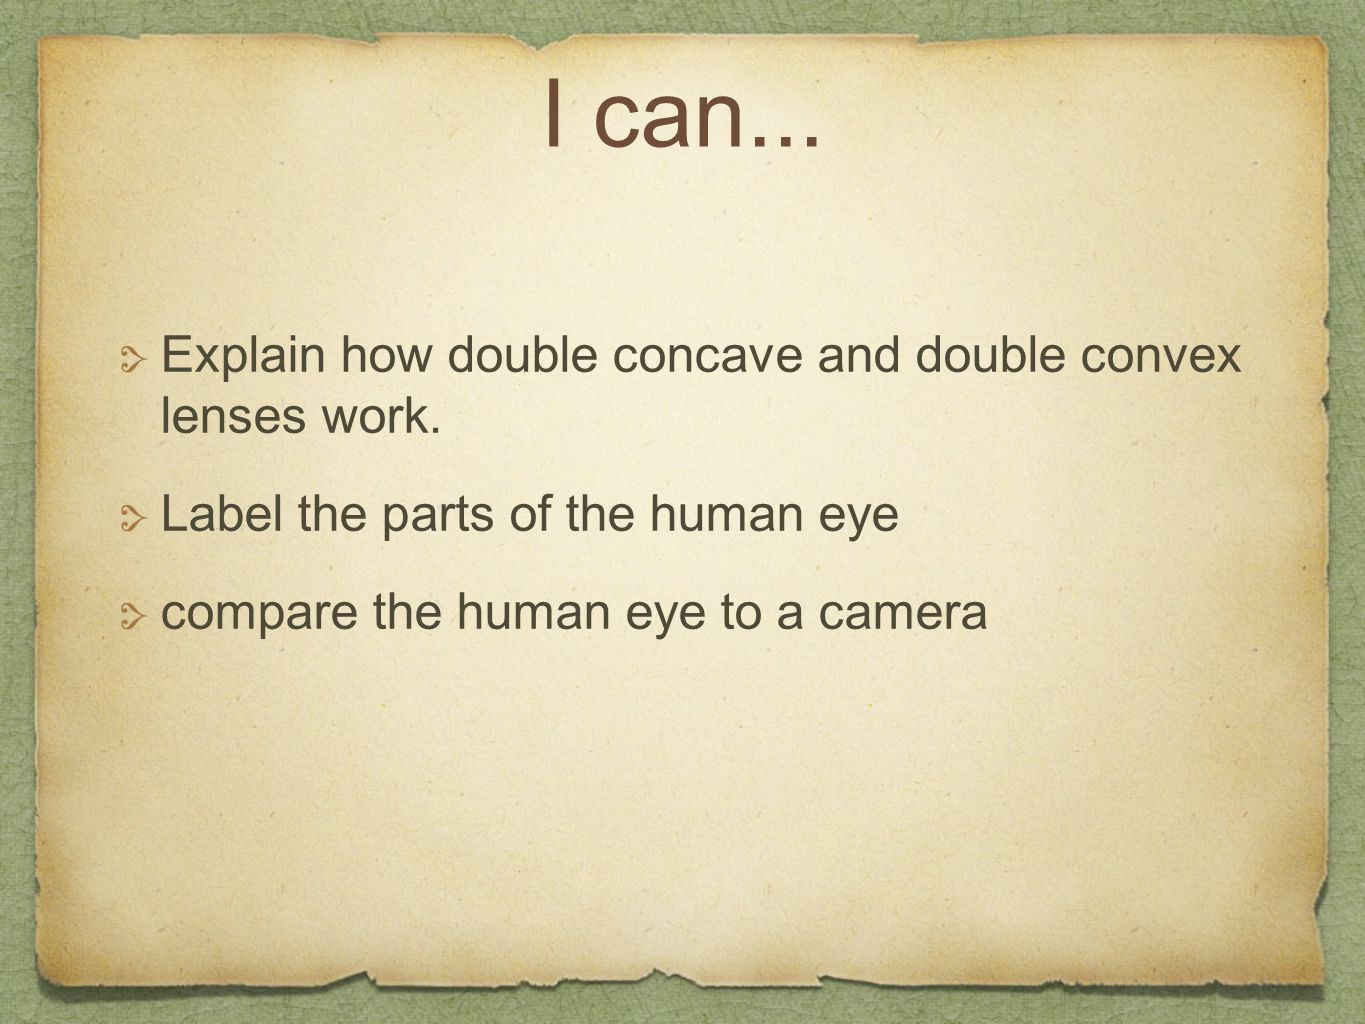 I can... Explain how double concave and double convex lenses work.